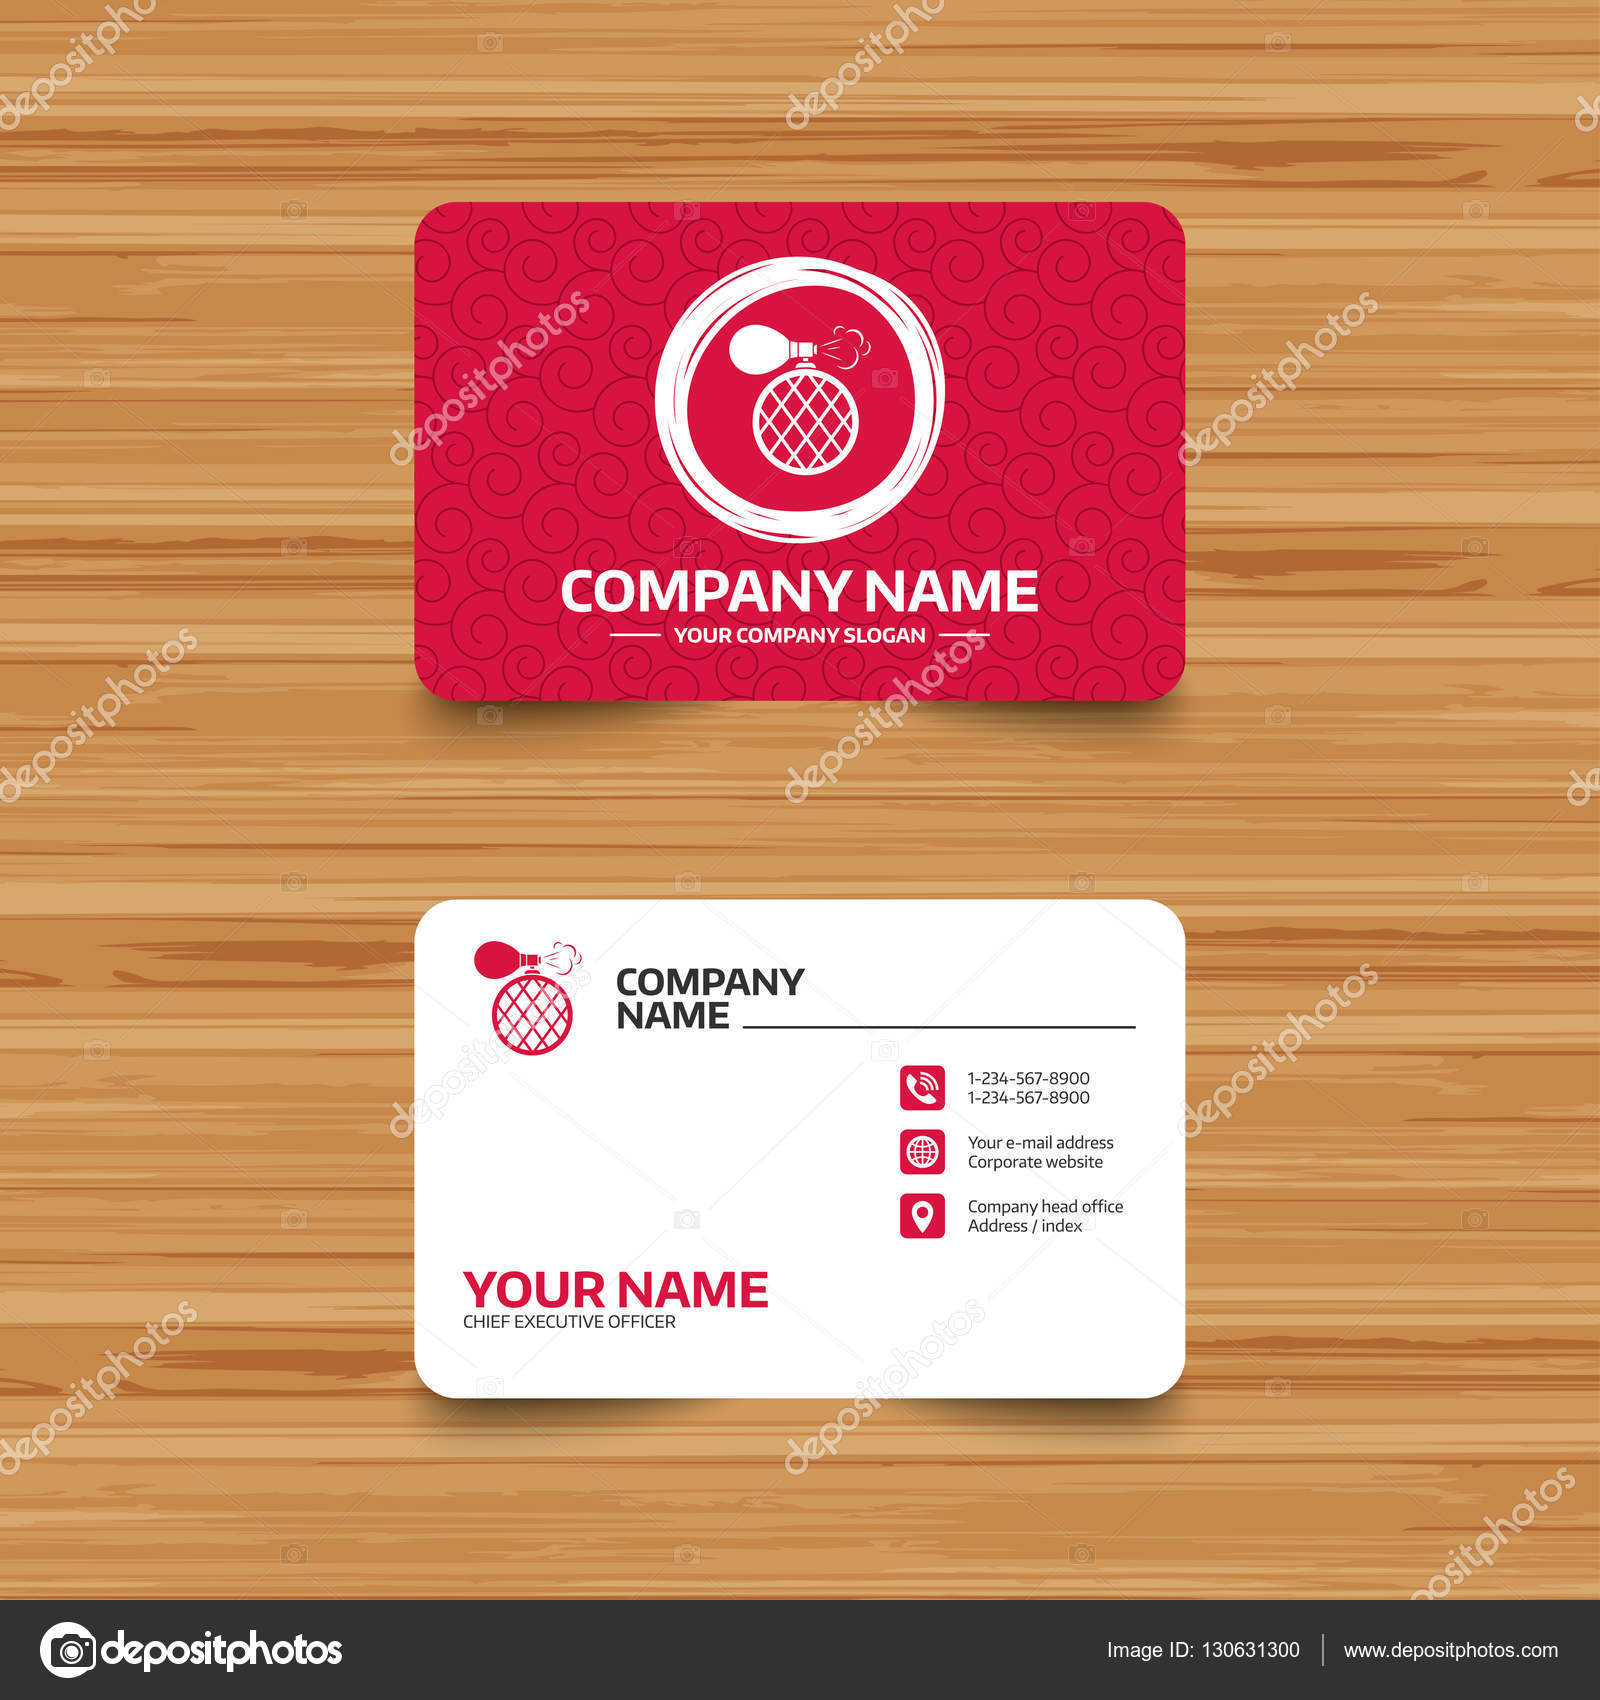 Business Card Template With Texture Stock Vector Blankstock